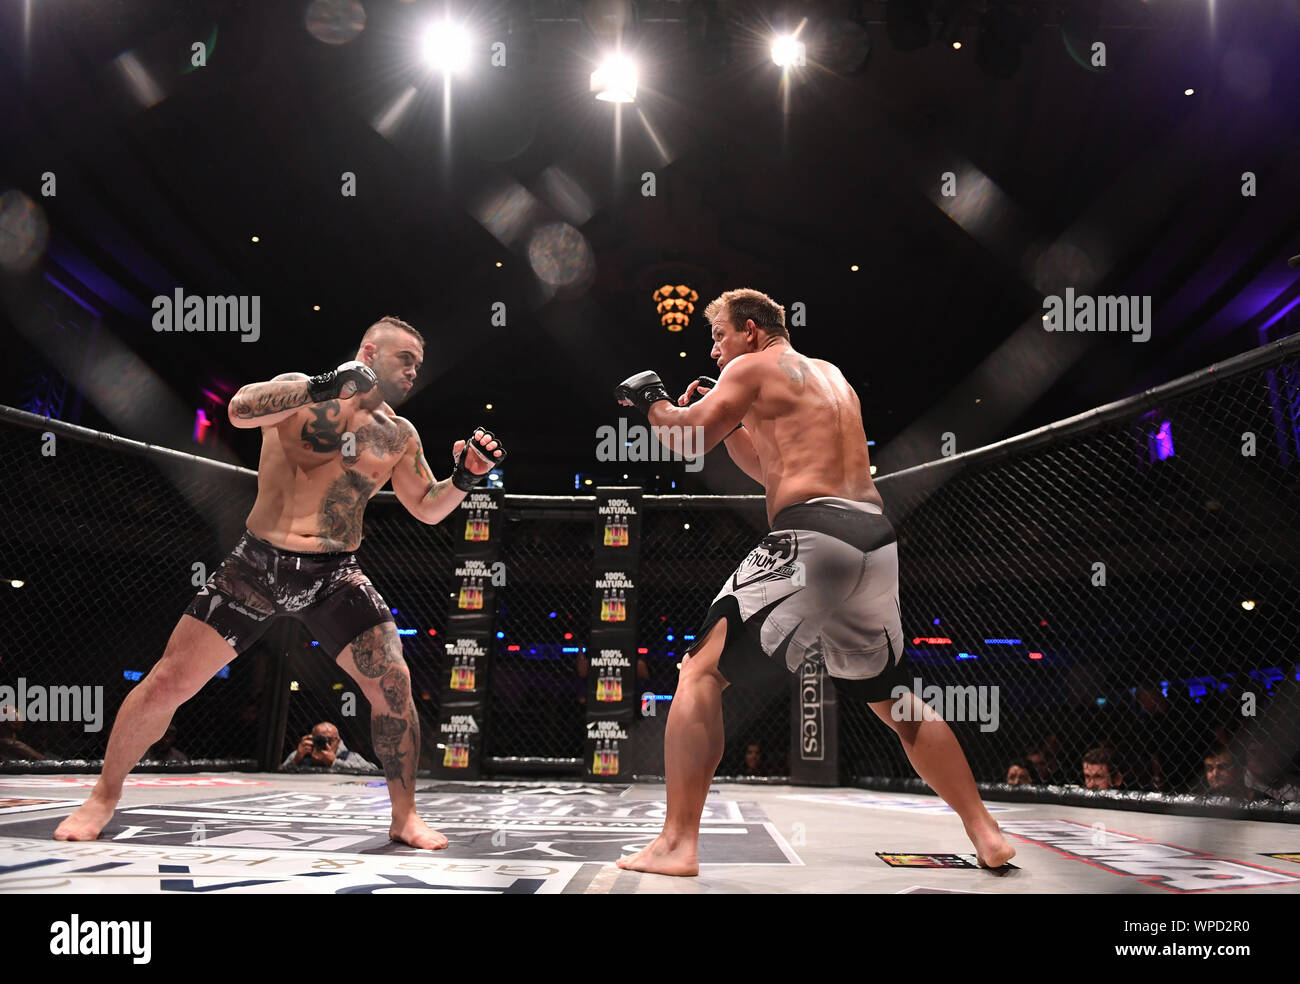 London, UK. 08th Sep, 2019. Troxy, London, England; UCMMA 60; Matthew Holland versus Alin Chirila in the  MMA 77KG Title fight, fighters face off - Editorial Use Only. Credit: Action Plus Sports Images/Alamy Live News Stock Photo